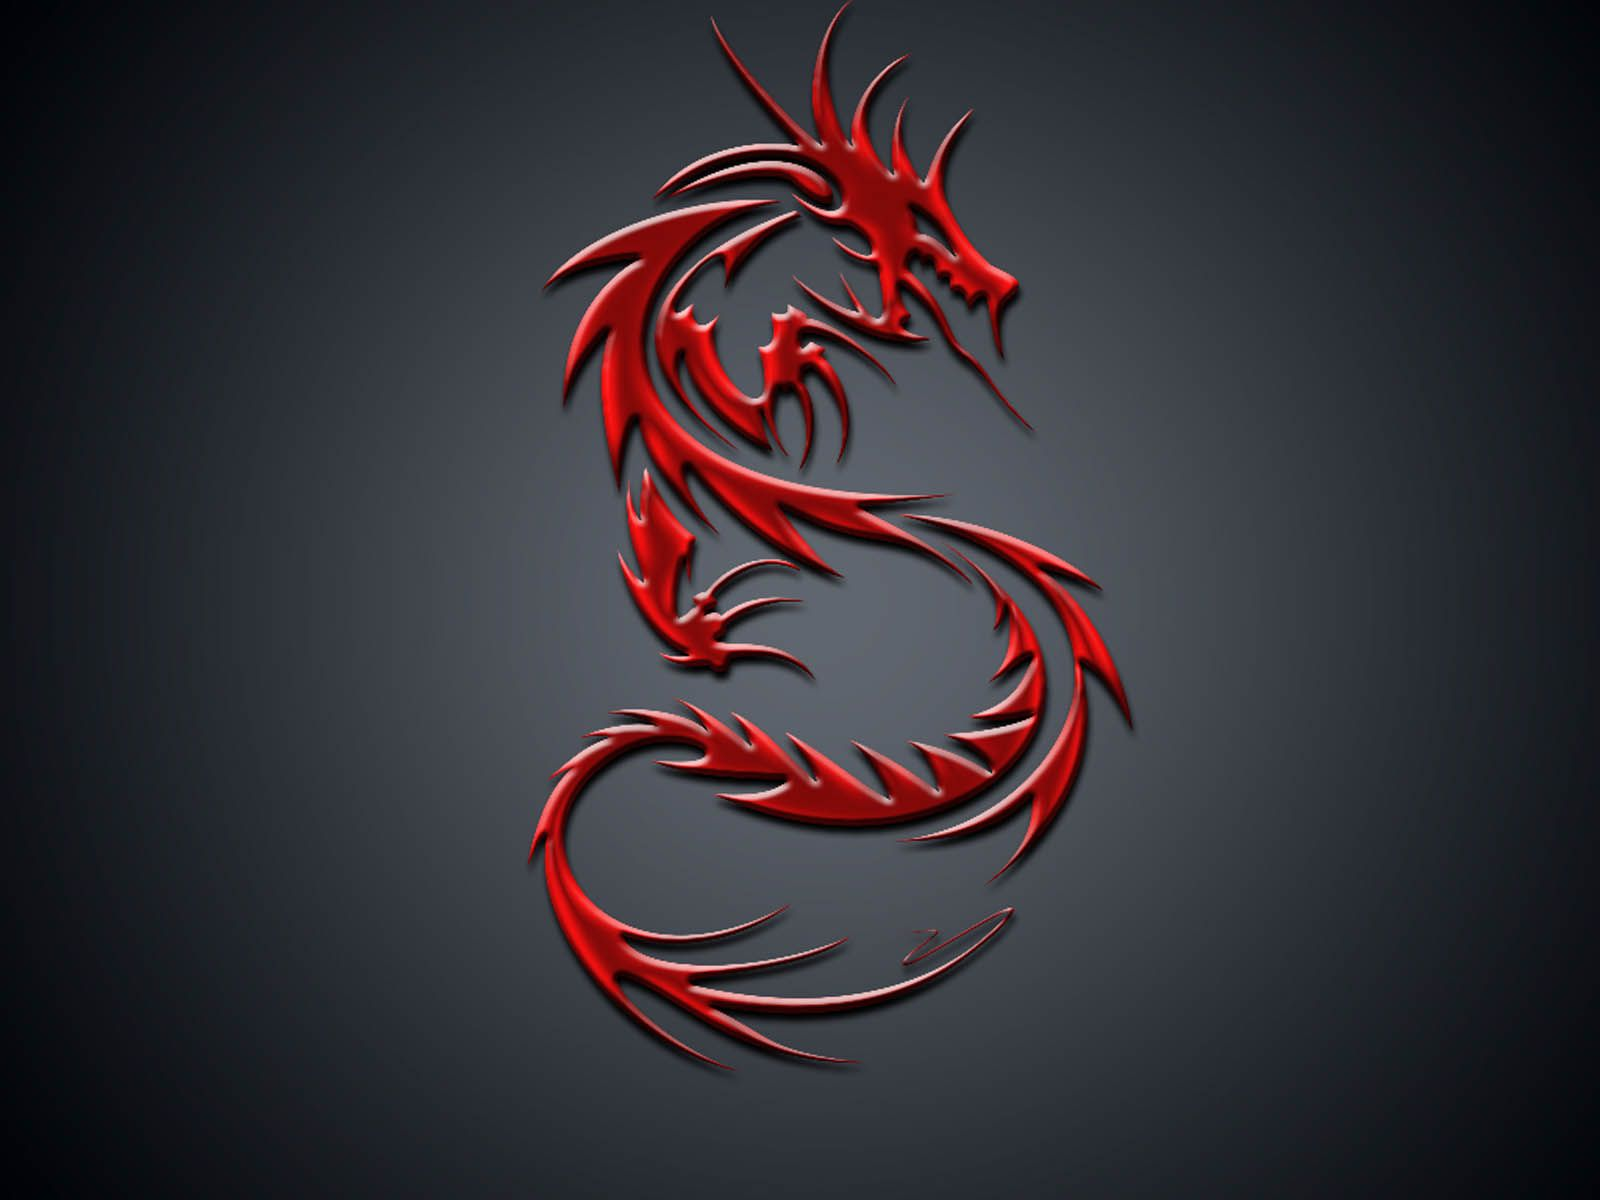 dragon hd wallpapers p group dragon pictures wallpapers wallpapers